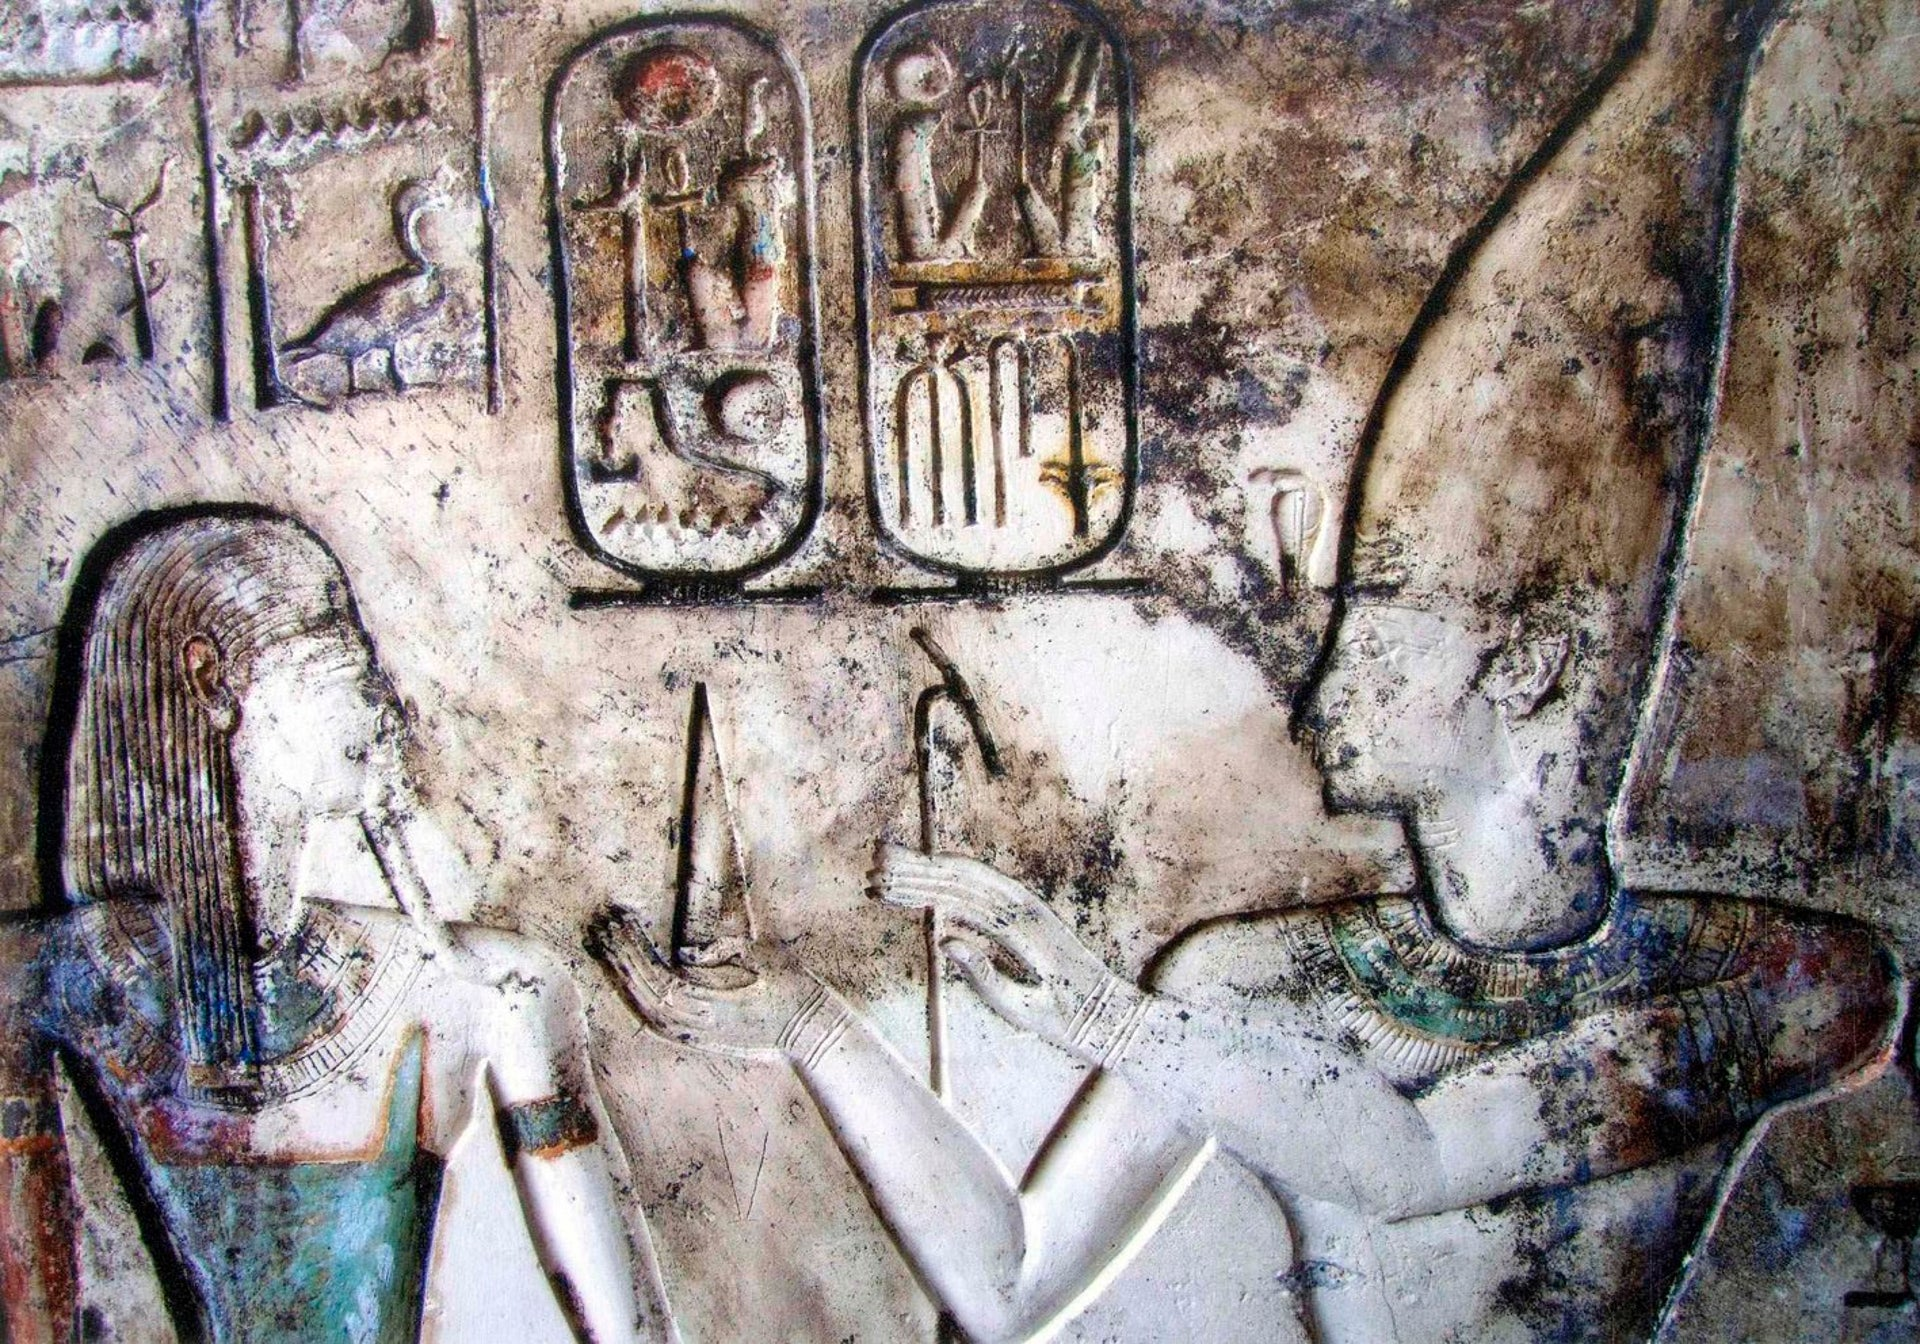 King Ramses II (on the right, with conical hat) with Geb, god of earth, carved onto the walls of temples in El-Qantara, around 160 km northeast of Cairo. Above Geb we see hieroglyphics. The carvings are very well preserved and seem to show remnants of blue and red paint.